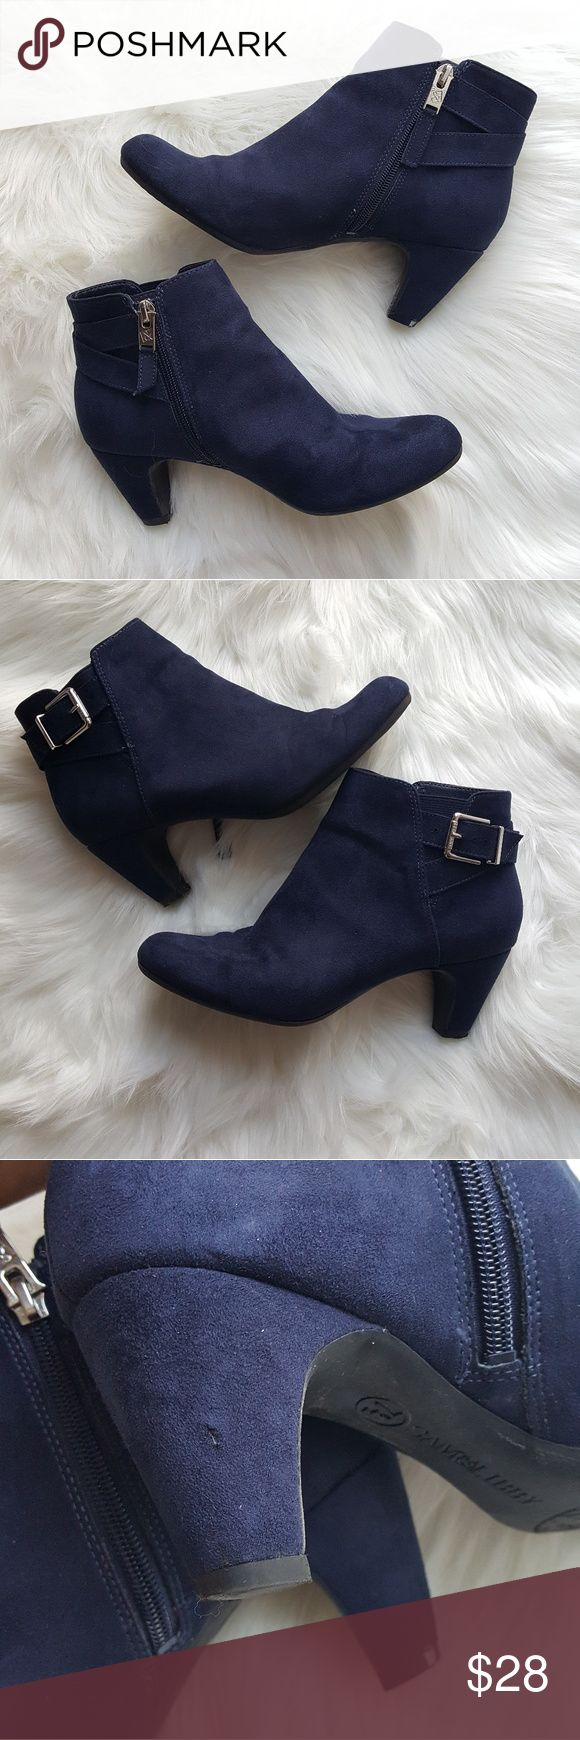 Sam & Libby blue suede booties sz 7 1/2 Sam & Libby blue suede booties sz 7 1/2 Excellent condition  Some minor signs of wear on heels as shown in pictures. None that take away from the beauty of boot while wearing. Sam & Libby Shoes Ankle Boots & Booties